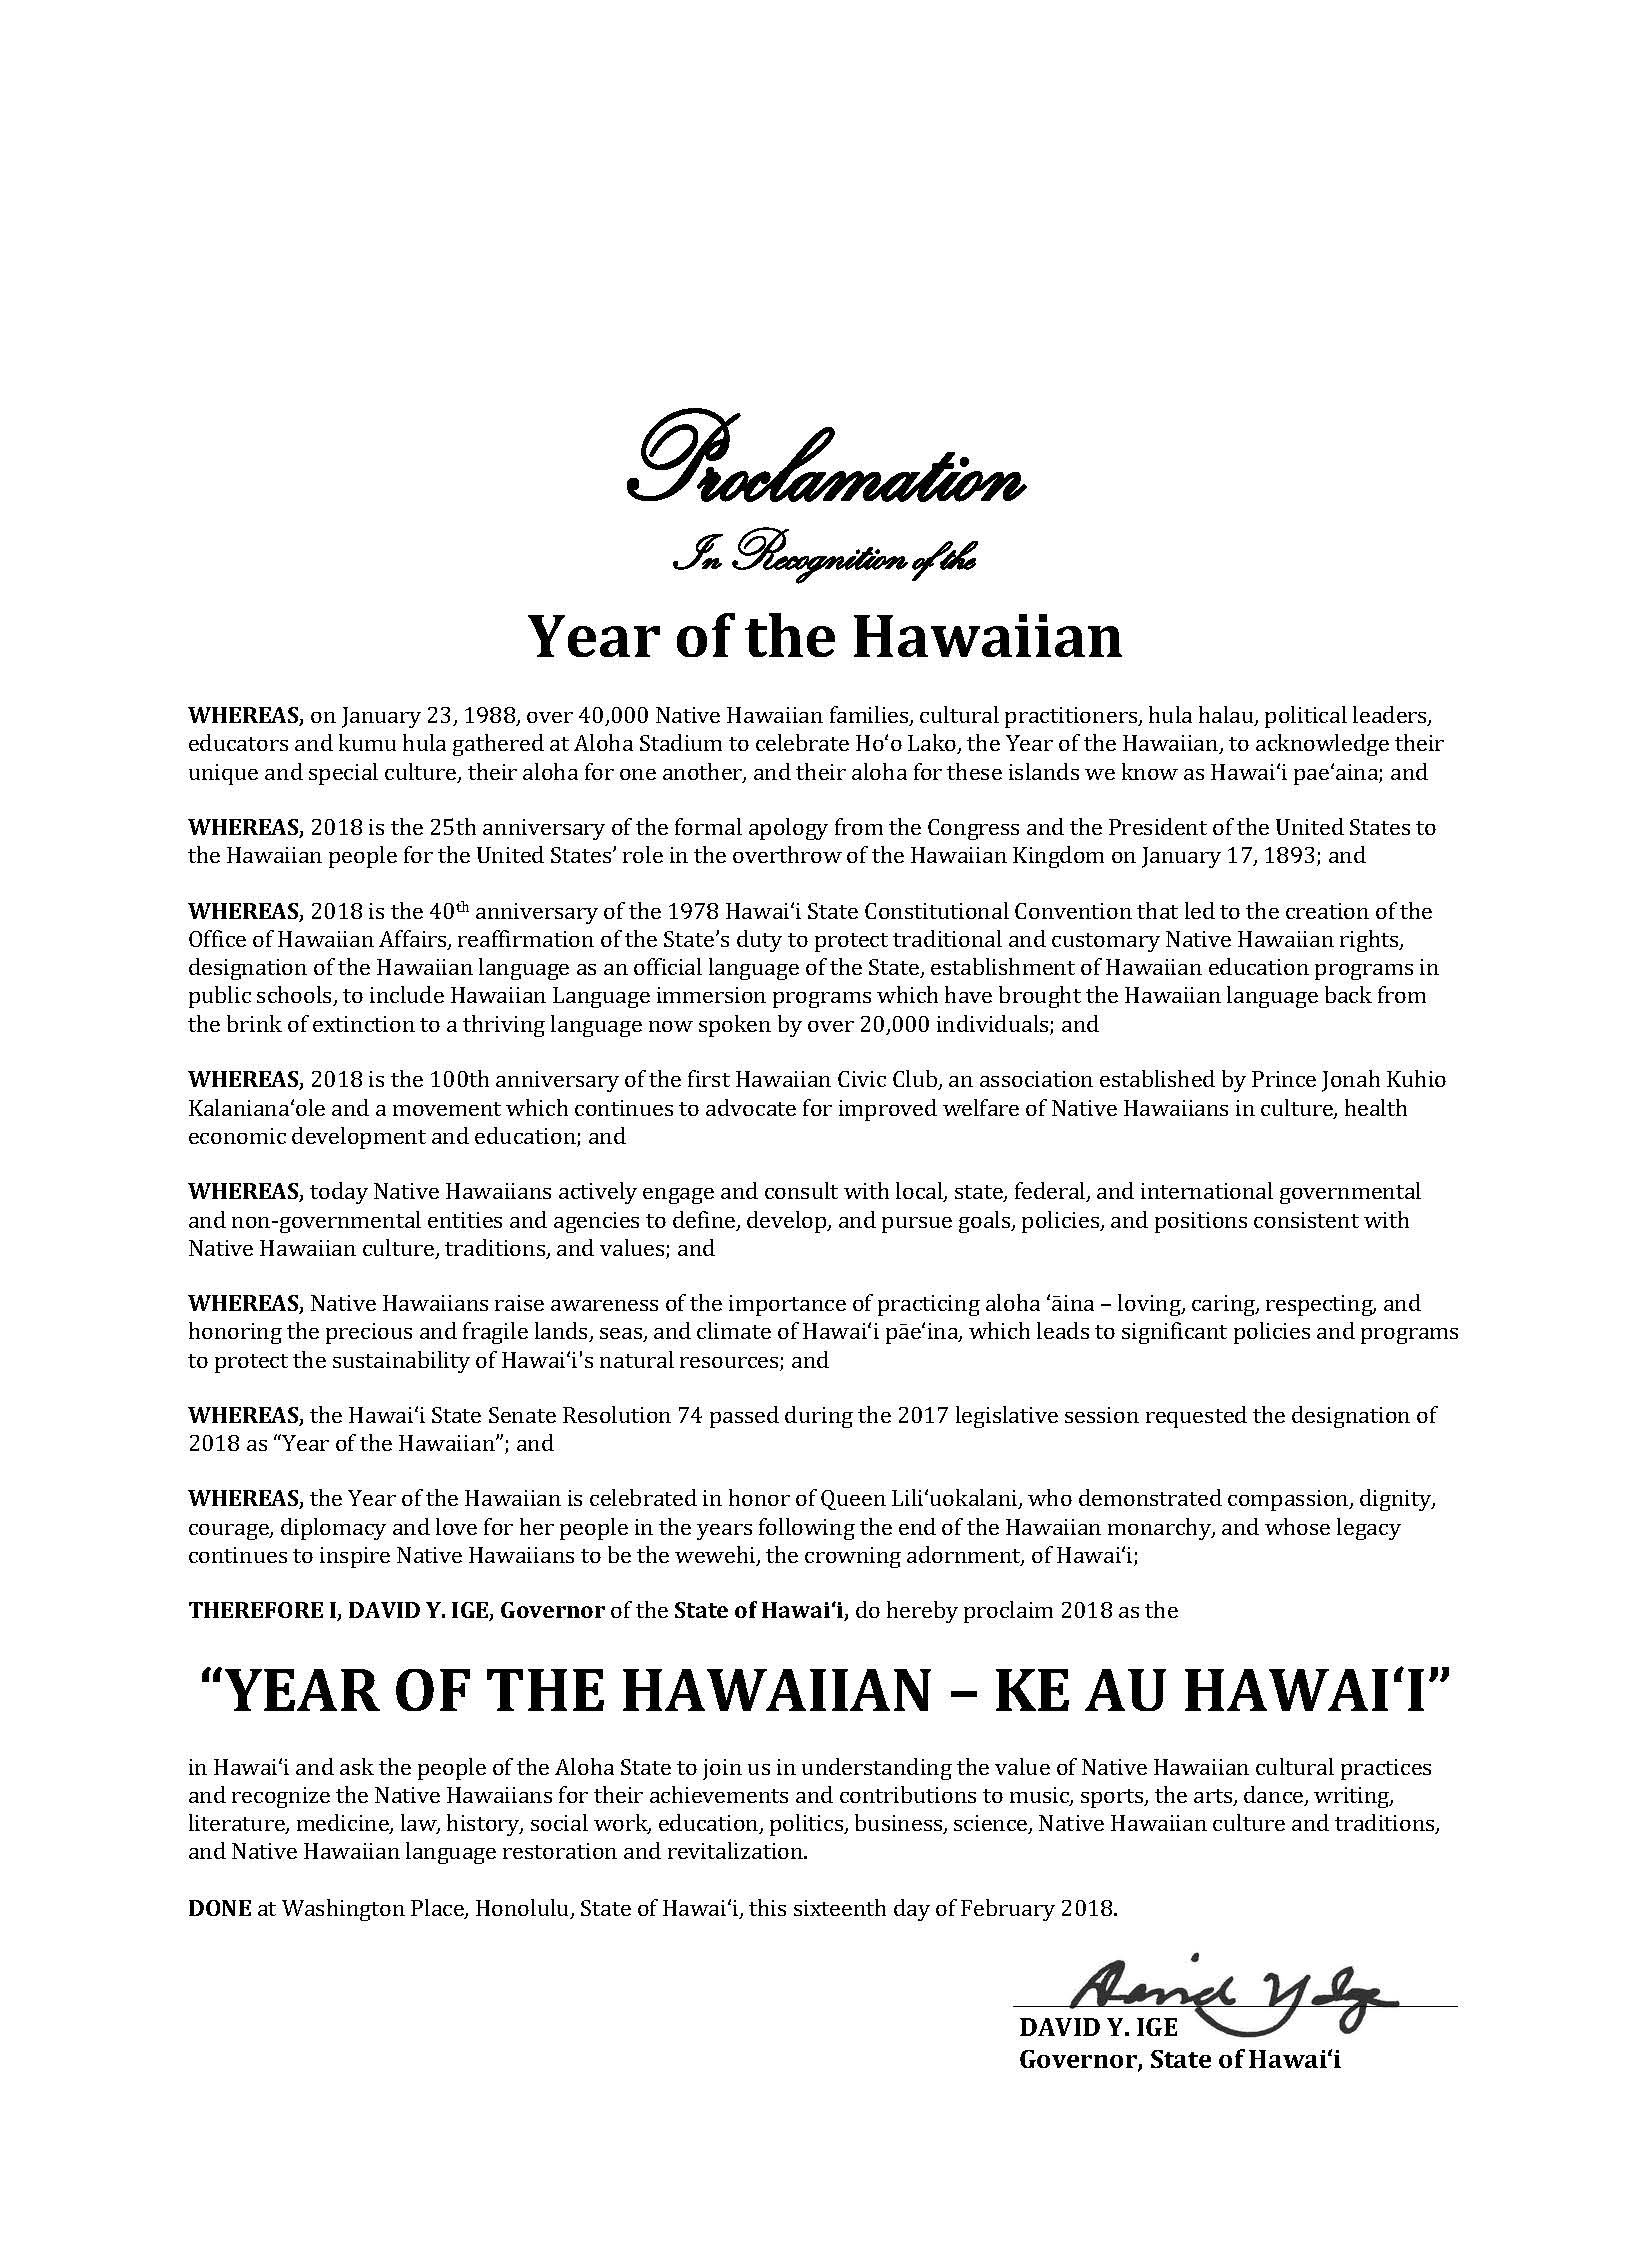 archives month 2018 governors proclamation year of the hawaiian ke au hawaii governors proclamation